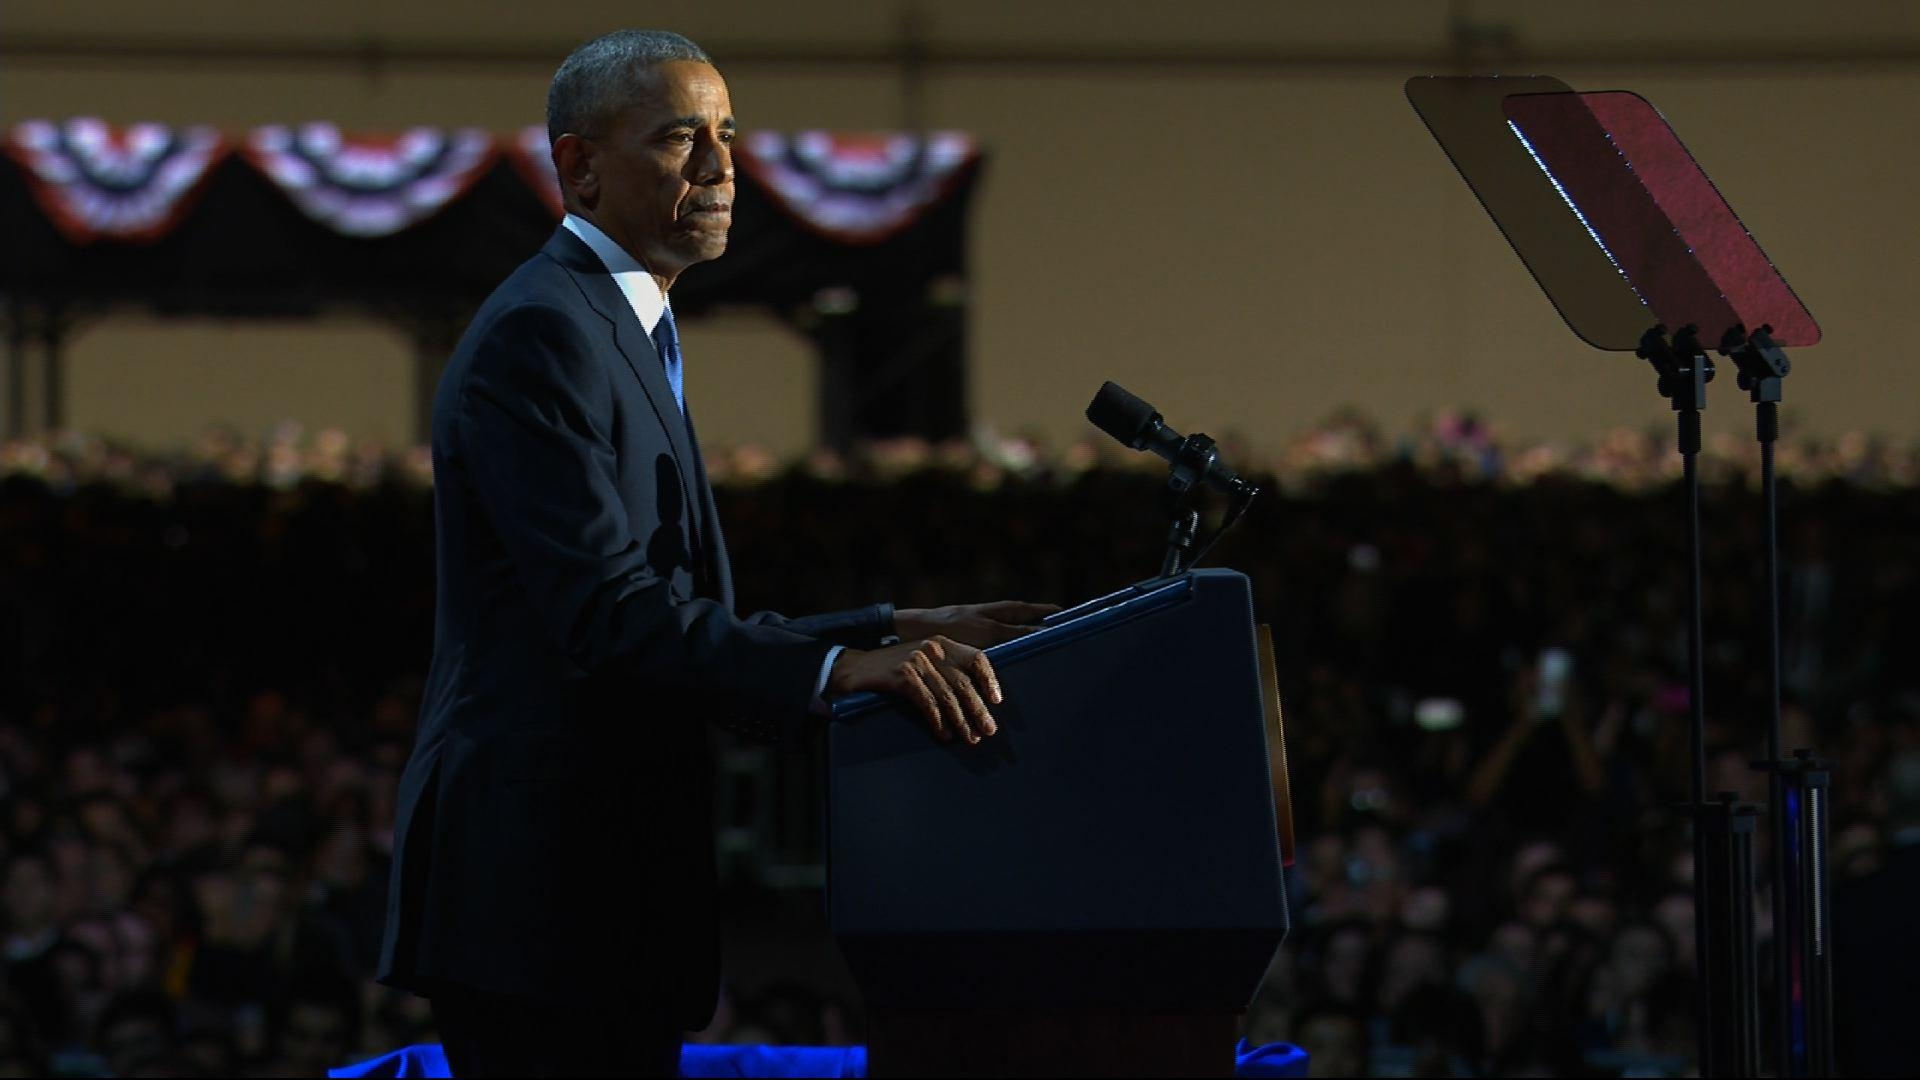 president obama race speech President obama first grabbed national attention with a keynote speech at the 2004 democratic national convention that portrayed america the way most americans want to see it, as a unified entity.